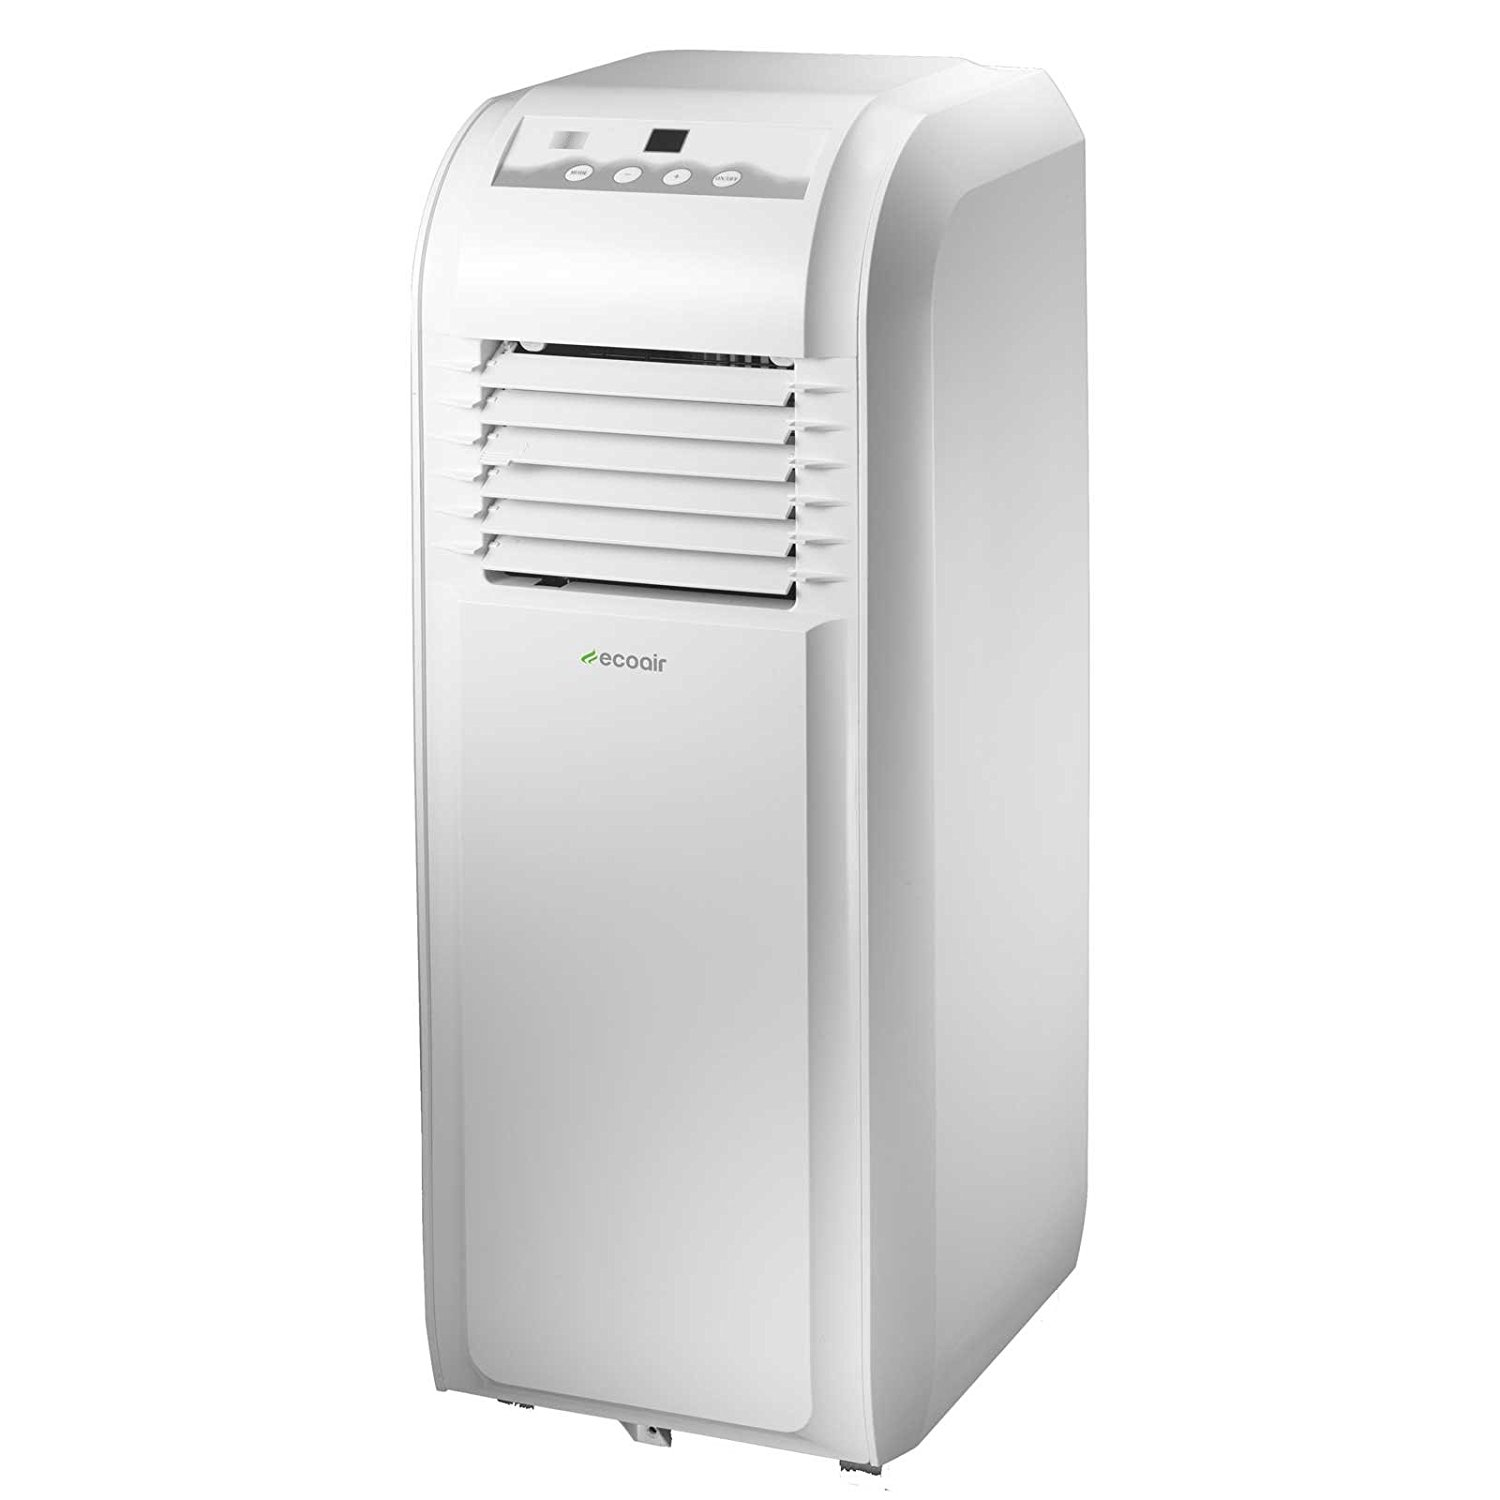 Ecoair Eco8p 8000 Btu Portable Air Conditioning Unit Review